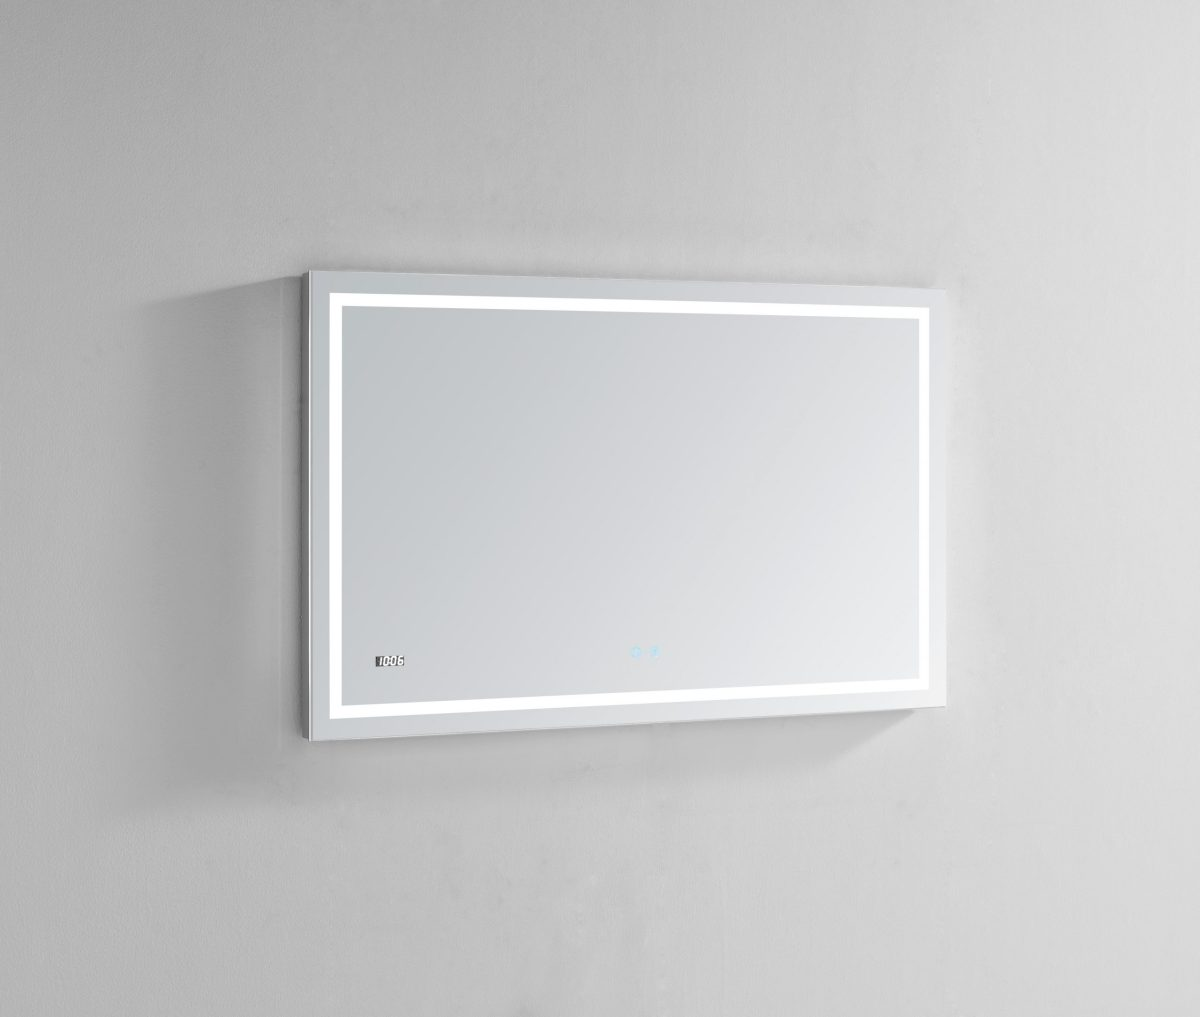 AQUADOM Daytona 48 inches x 36 inches Wall Mounted LED Lighted Silver Mirror for Bathroom